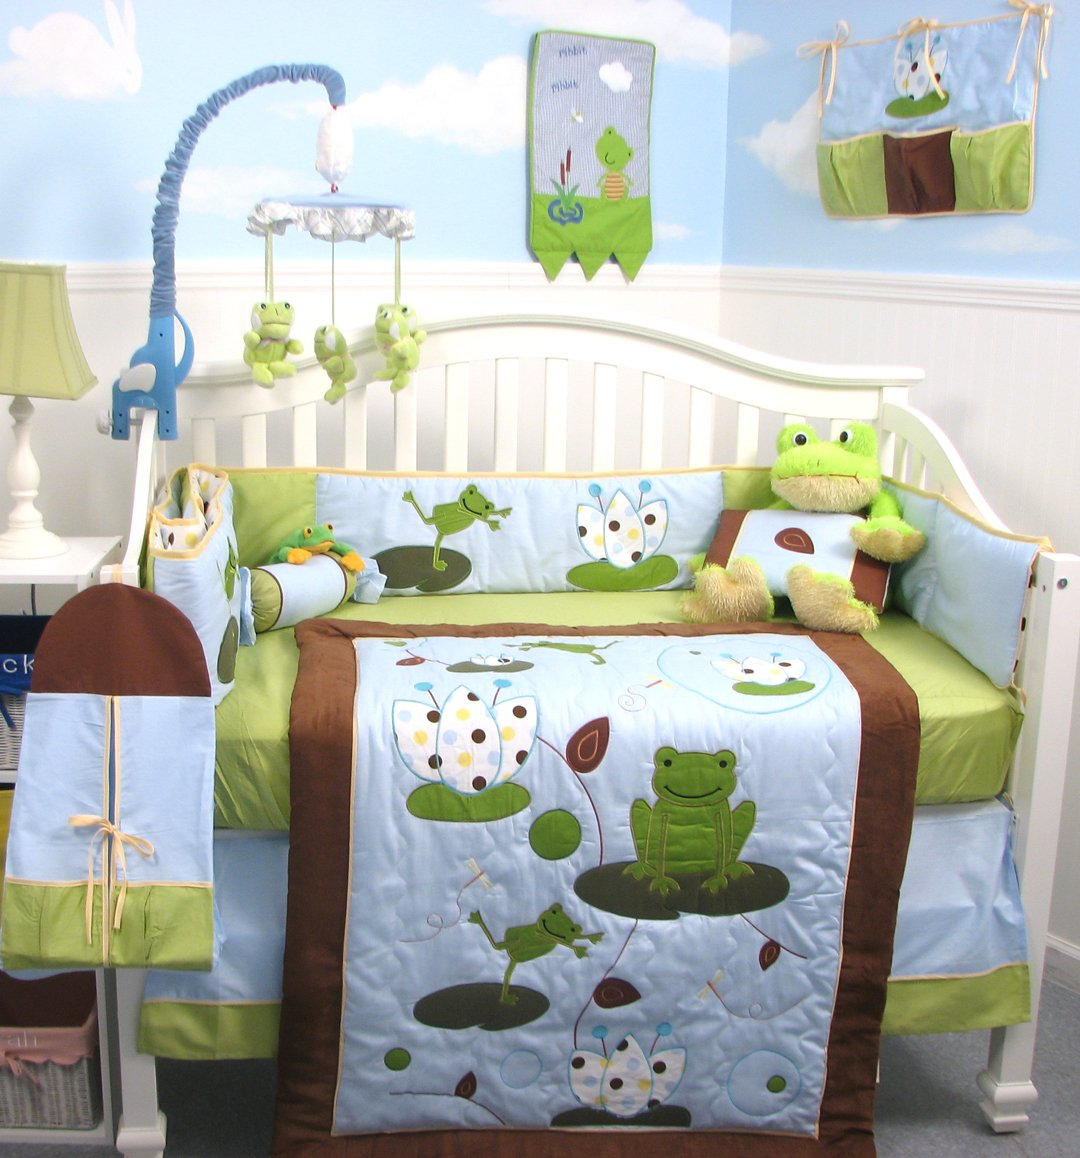 Baby Bedroom Set. Amazon com  SoHo Froggies Party Baby Crib Nursery Bedding Set 13 pcs included Diaper Bag with Changing Pad Bottle Case Frog Bumper